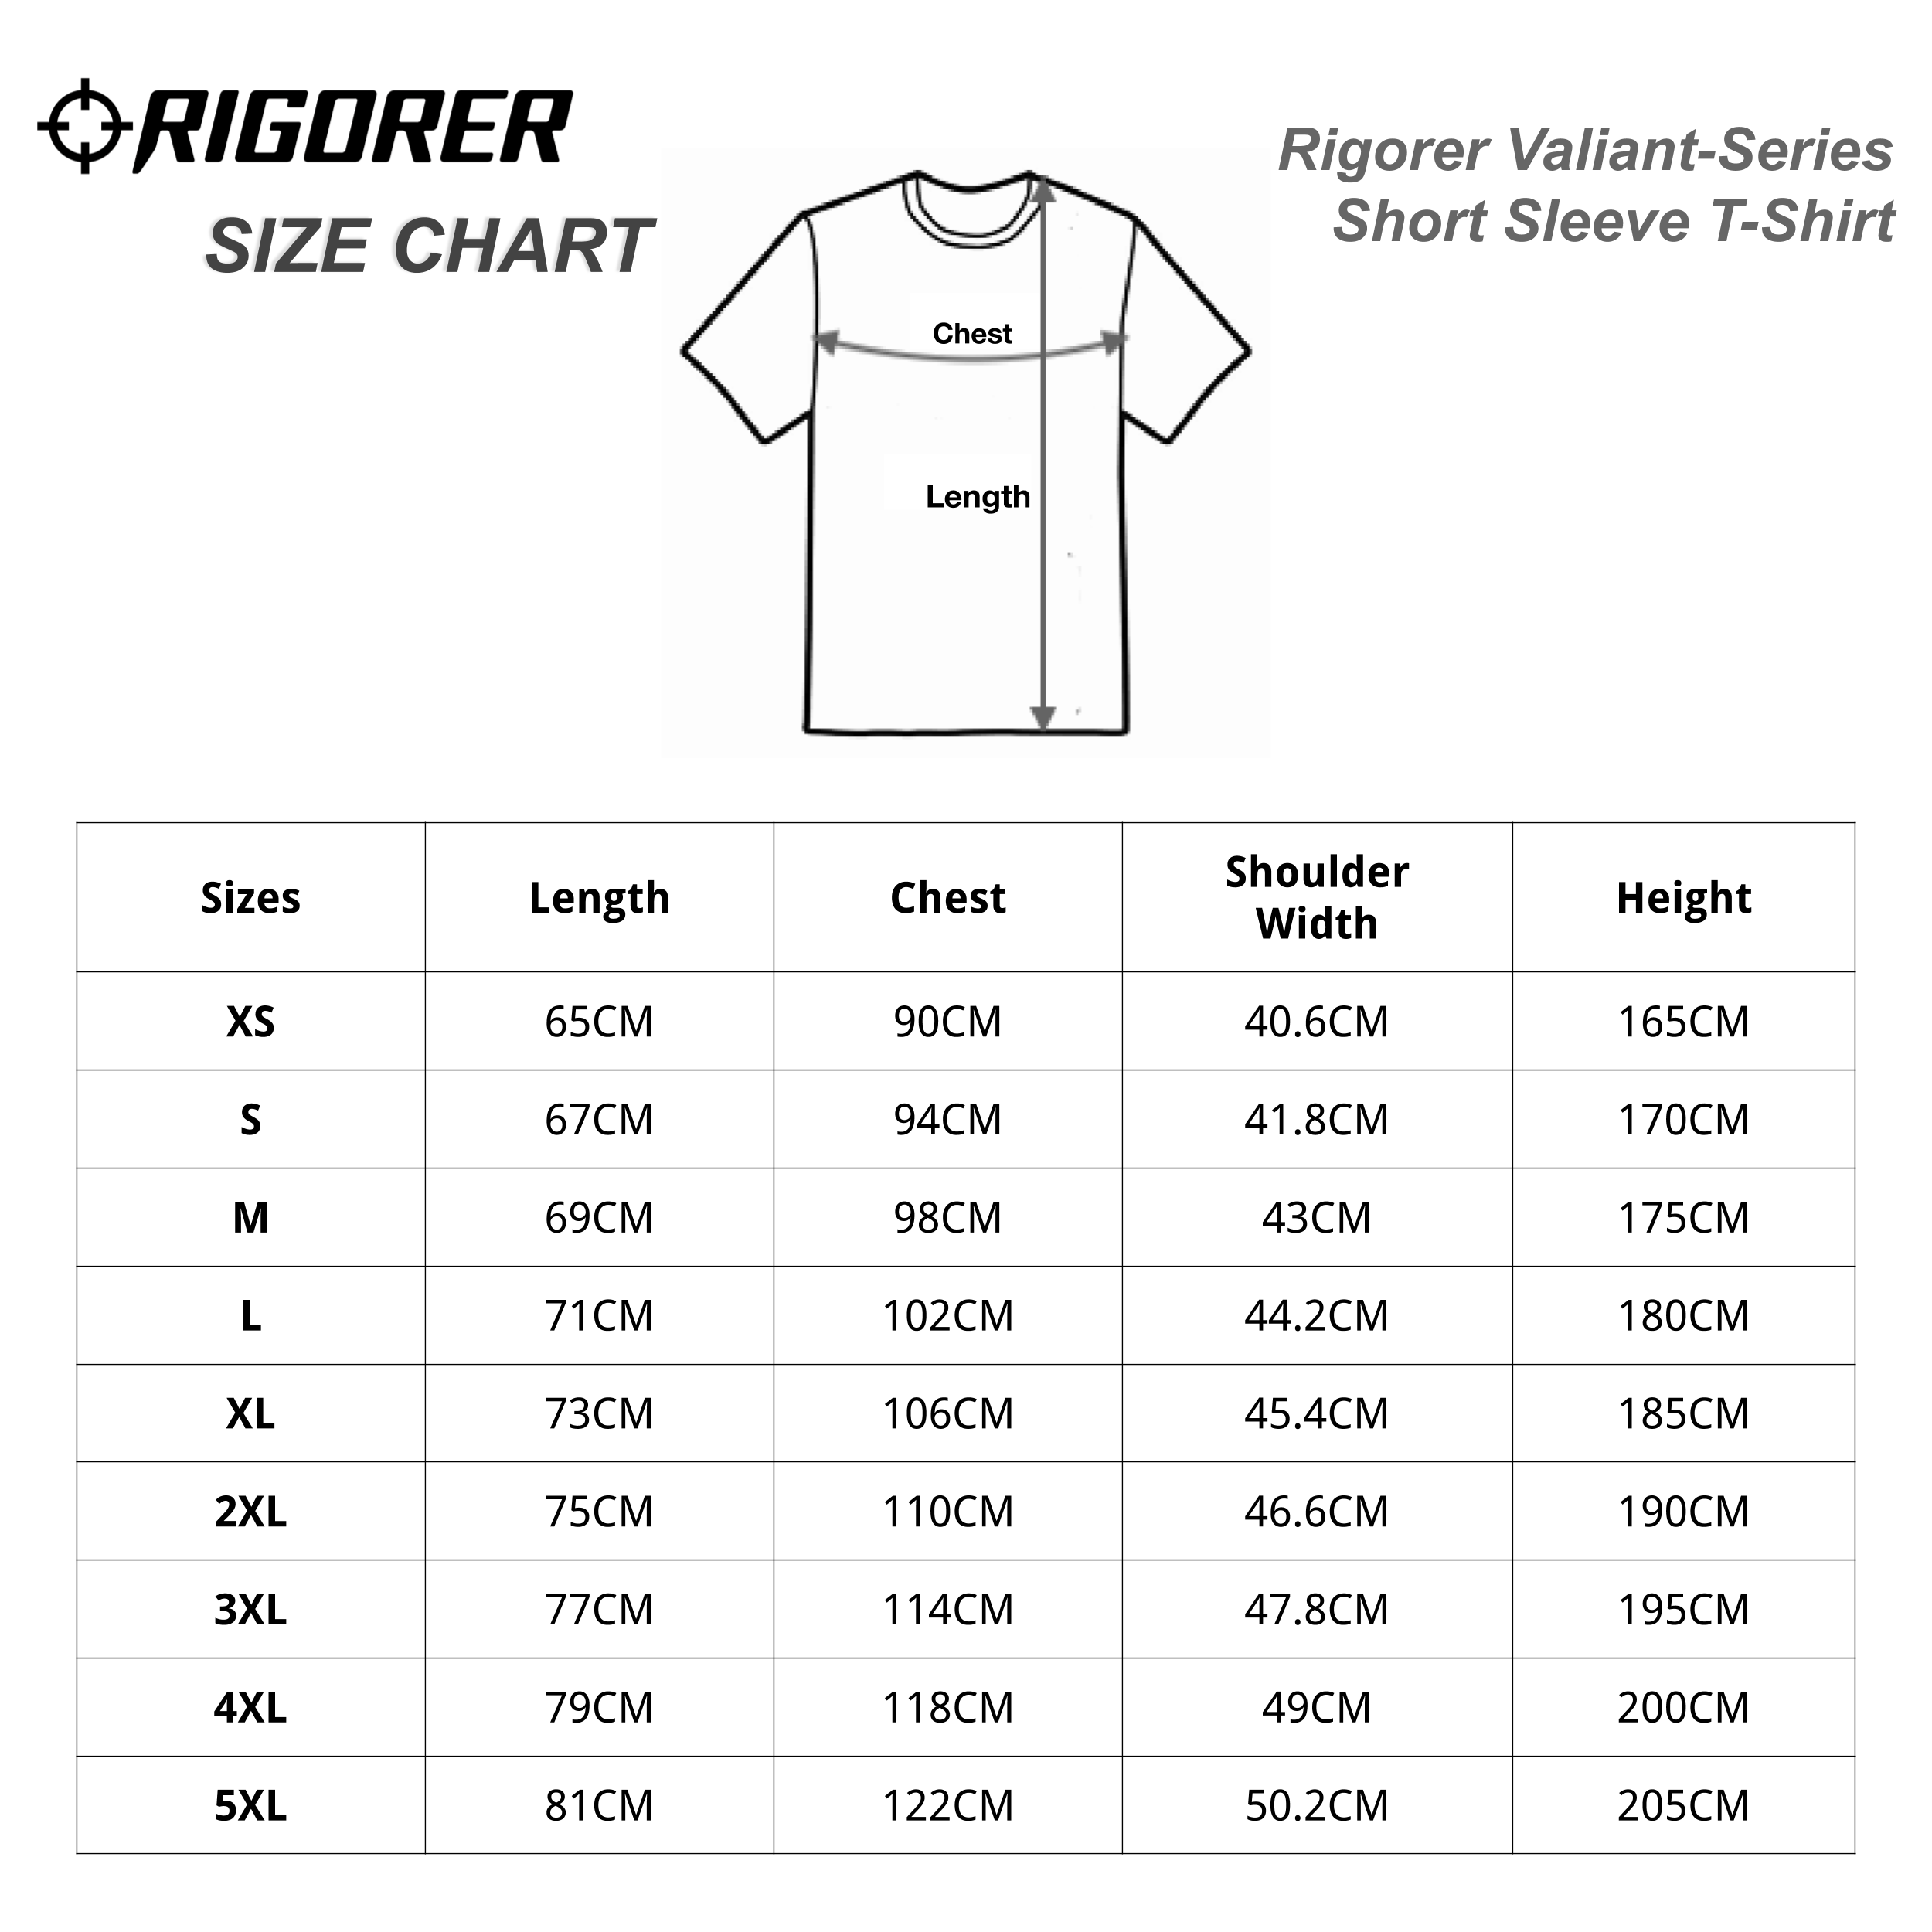 Rigorer Valiant-Series Short Sleeve T-Shirt Sizing Chart